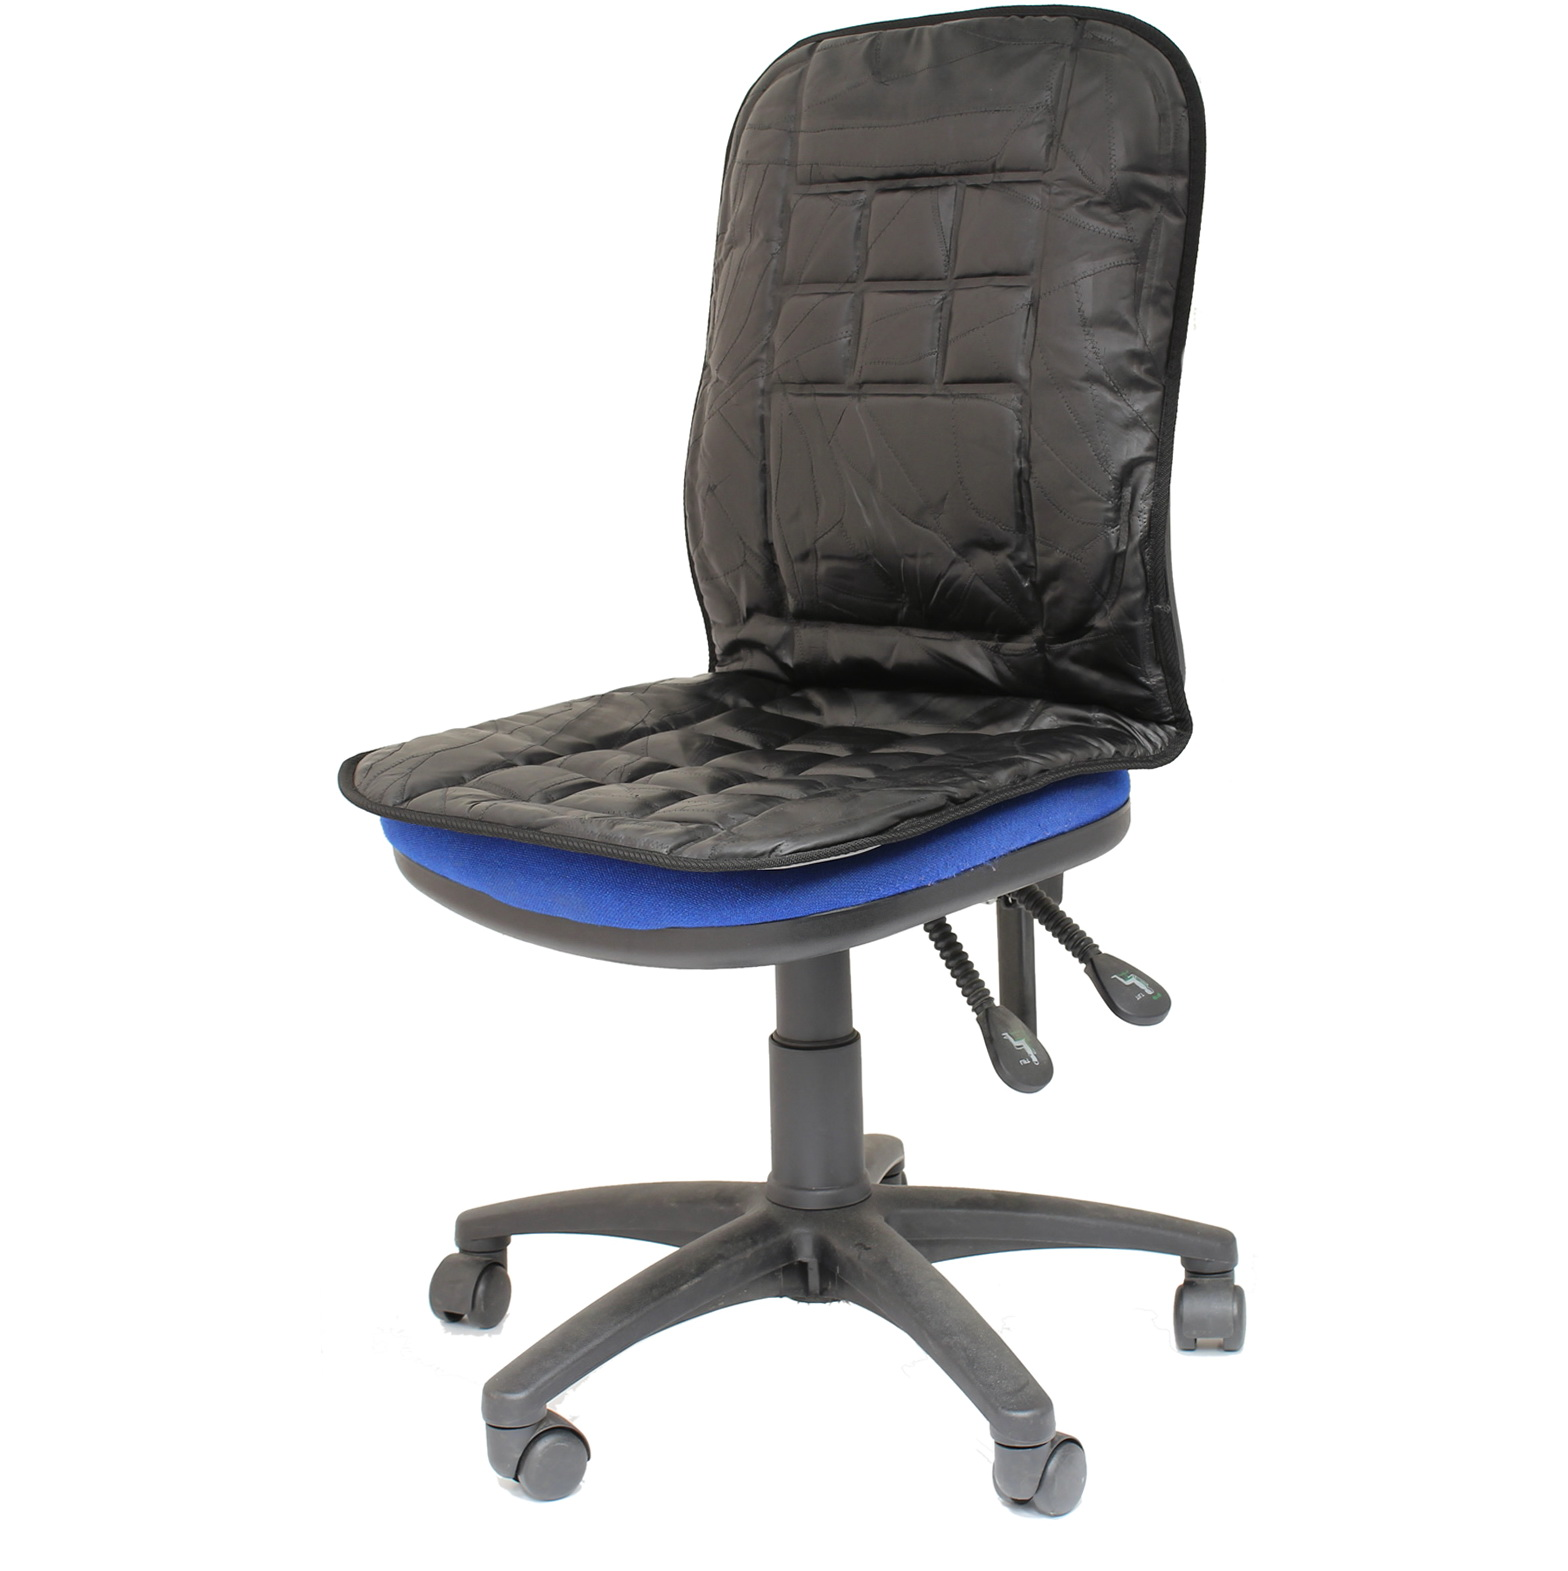 Ergonomic Chair Cushion Seat Cushion For Office Chair Home Design Ideas